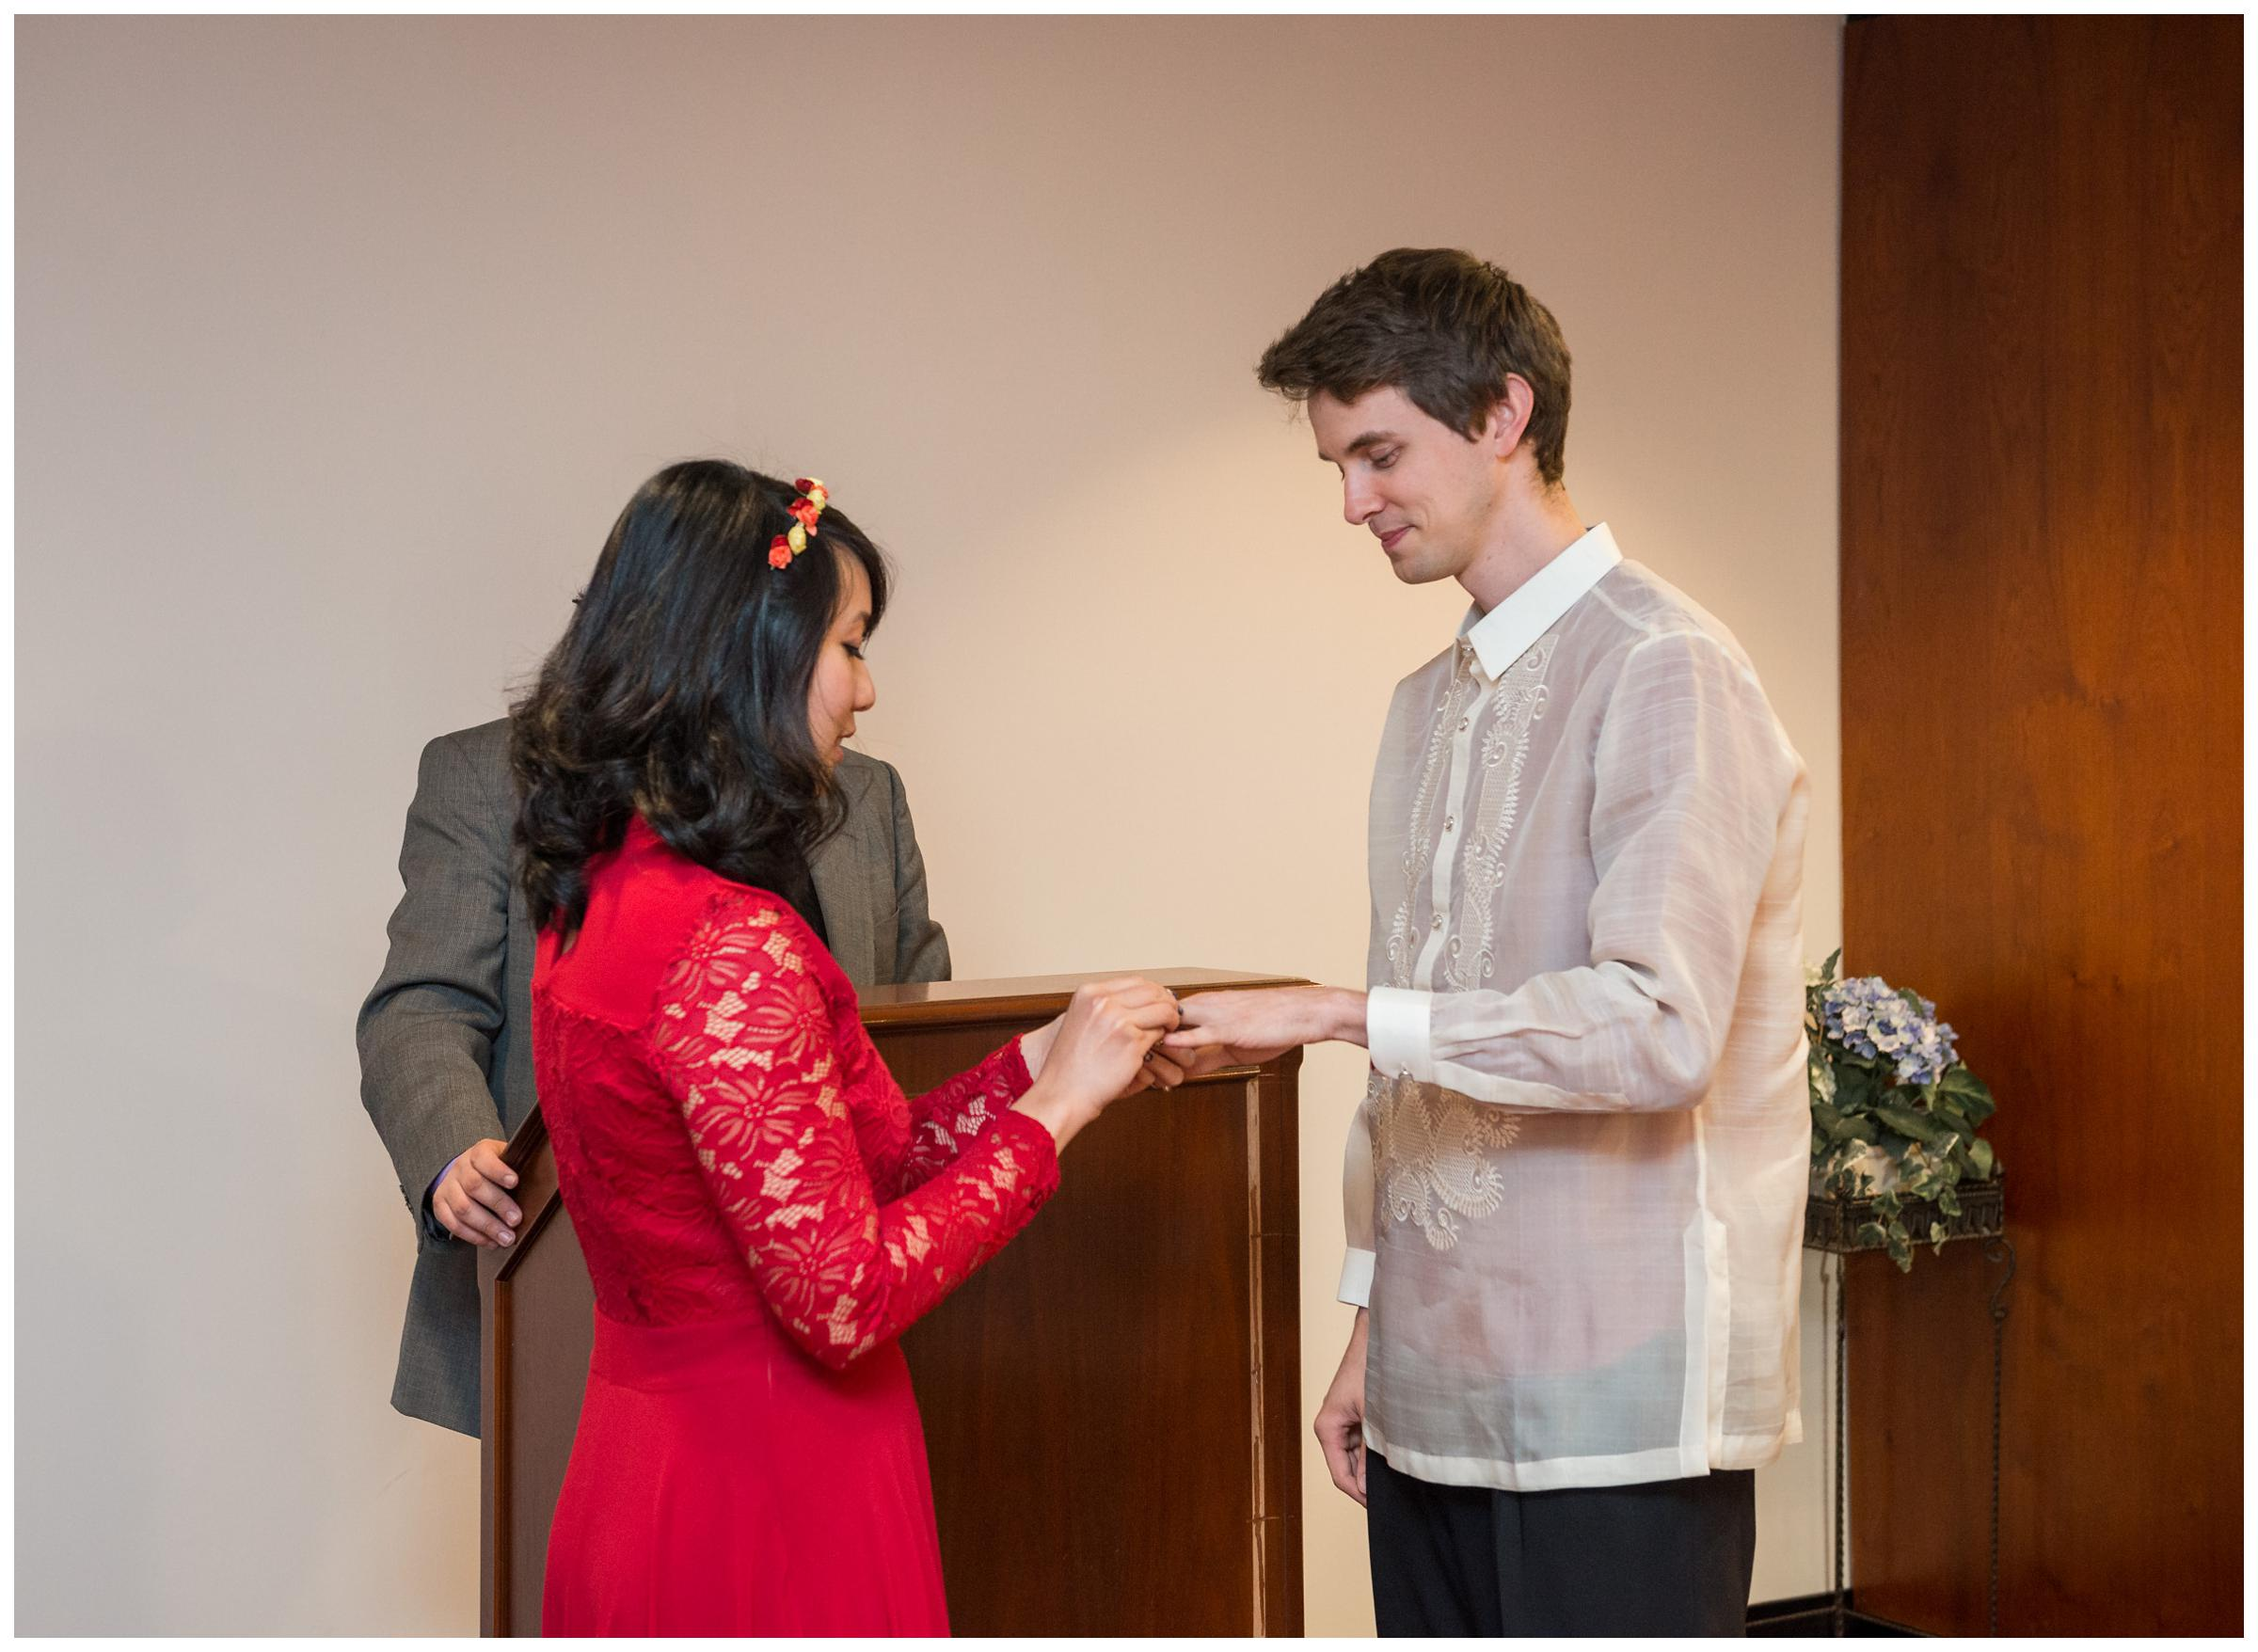 bride and groom exchanging rings during elopement wedding at Montgomery County Courthouse in Rockville, Maryland